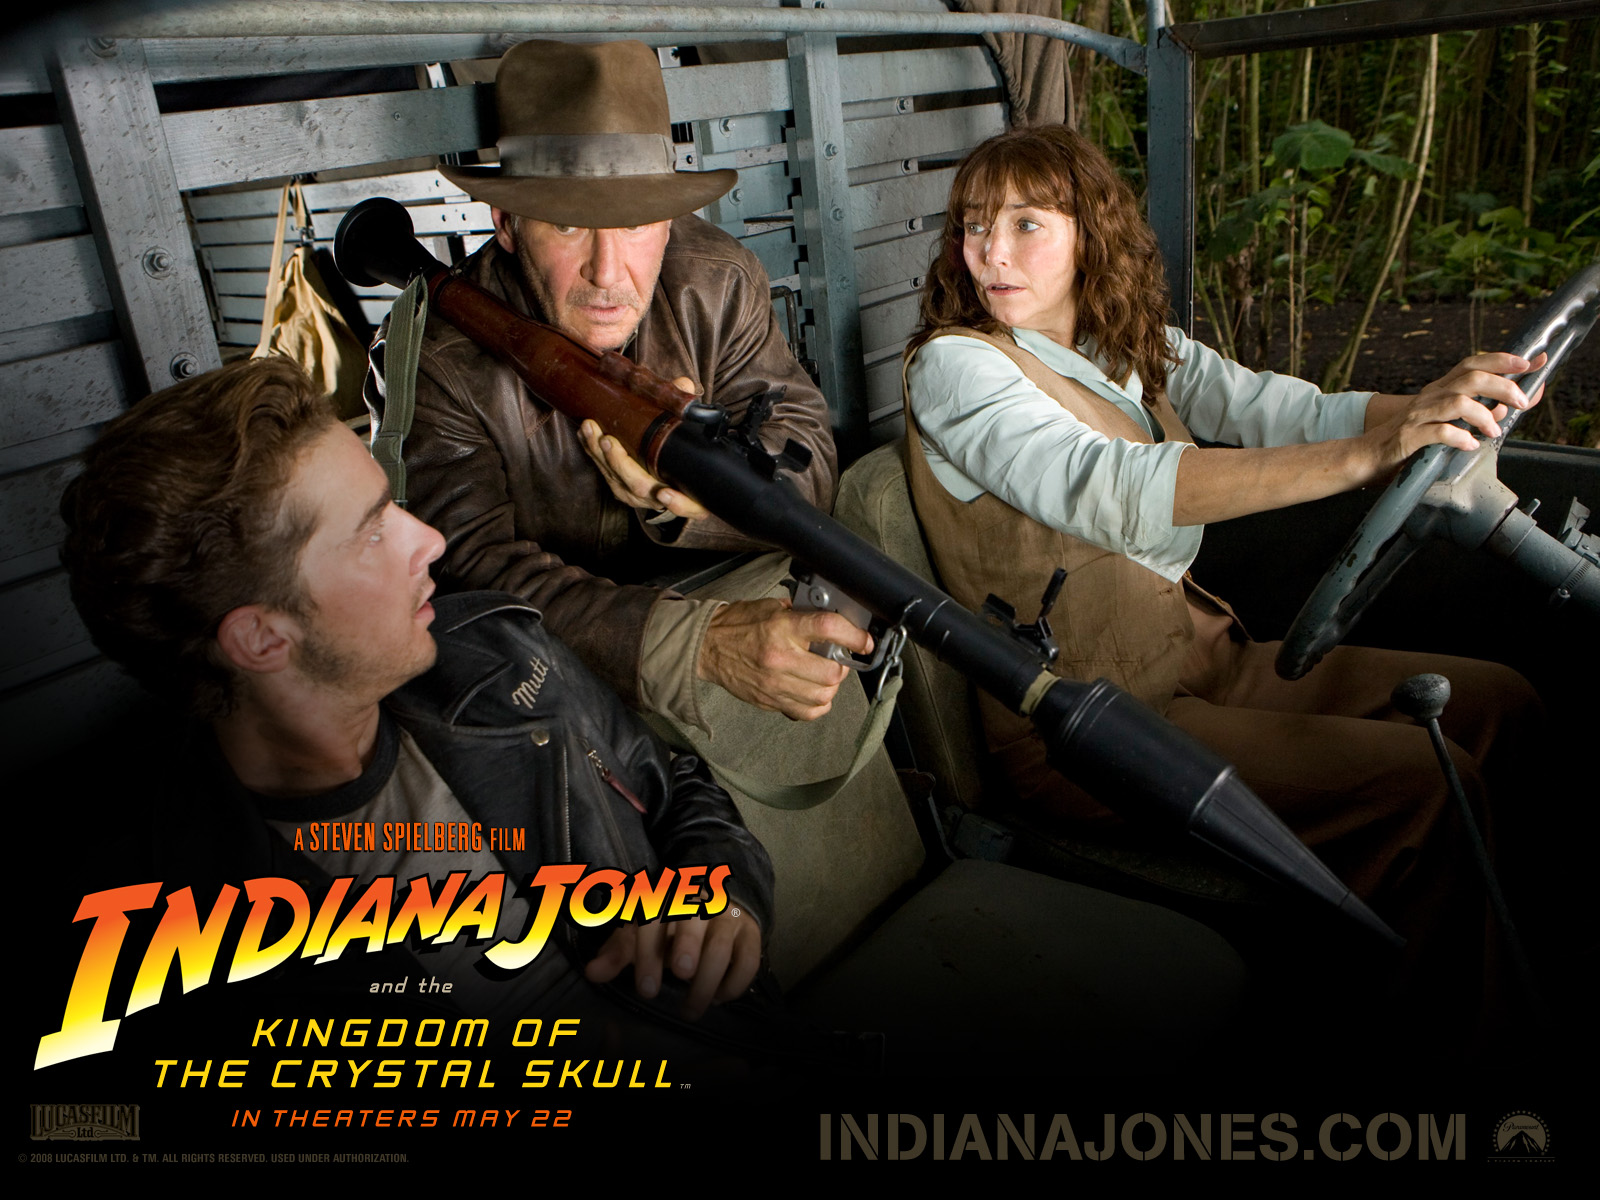 Desktop Wallpapers Indiana Jones Indiana Jones and the Kingdom of the Crystal Skull Movies film